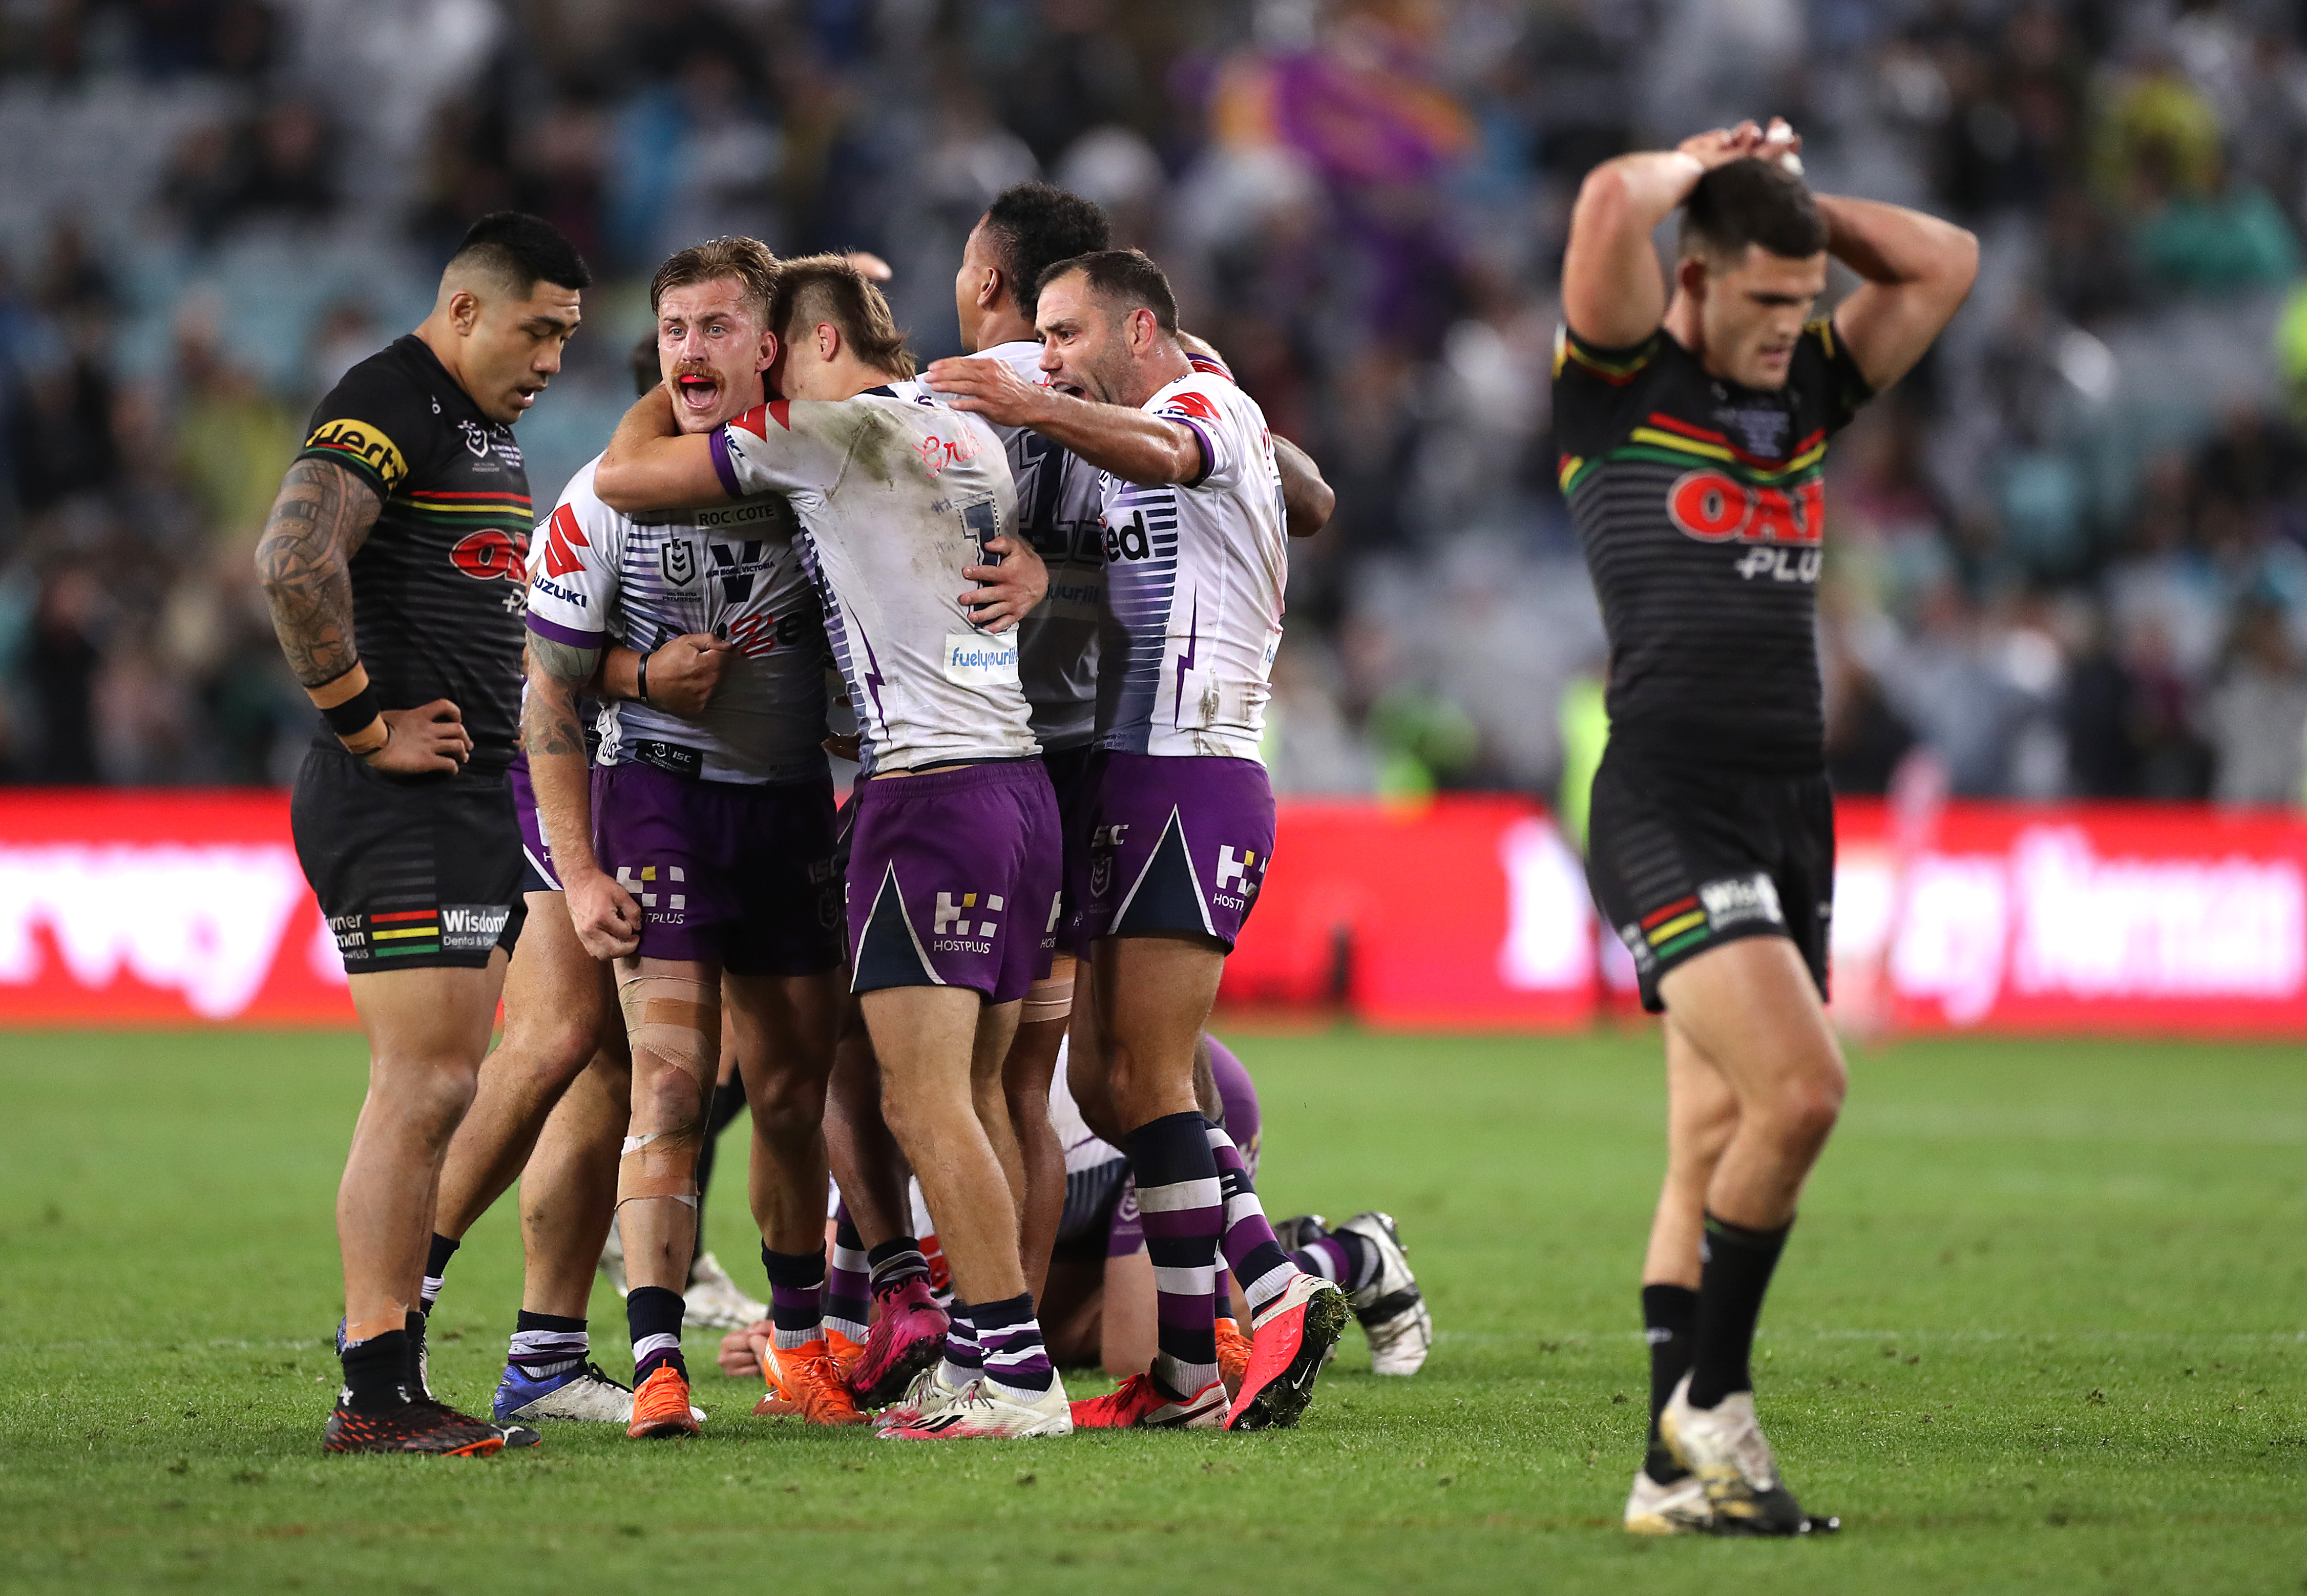 SYDNEY, AUSTRALIA - OCTOBER 25: Cameron Smith of the Storm celebrates victory during the 2020 NRL Grand Final match between the Penrith Panthers and the Melbourne Storm at ANZ Stadium on October 25, 2020 in Sydney, Australia. (Photo by Mark Kolbe/Getty Images)